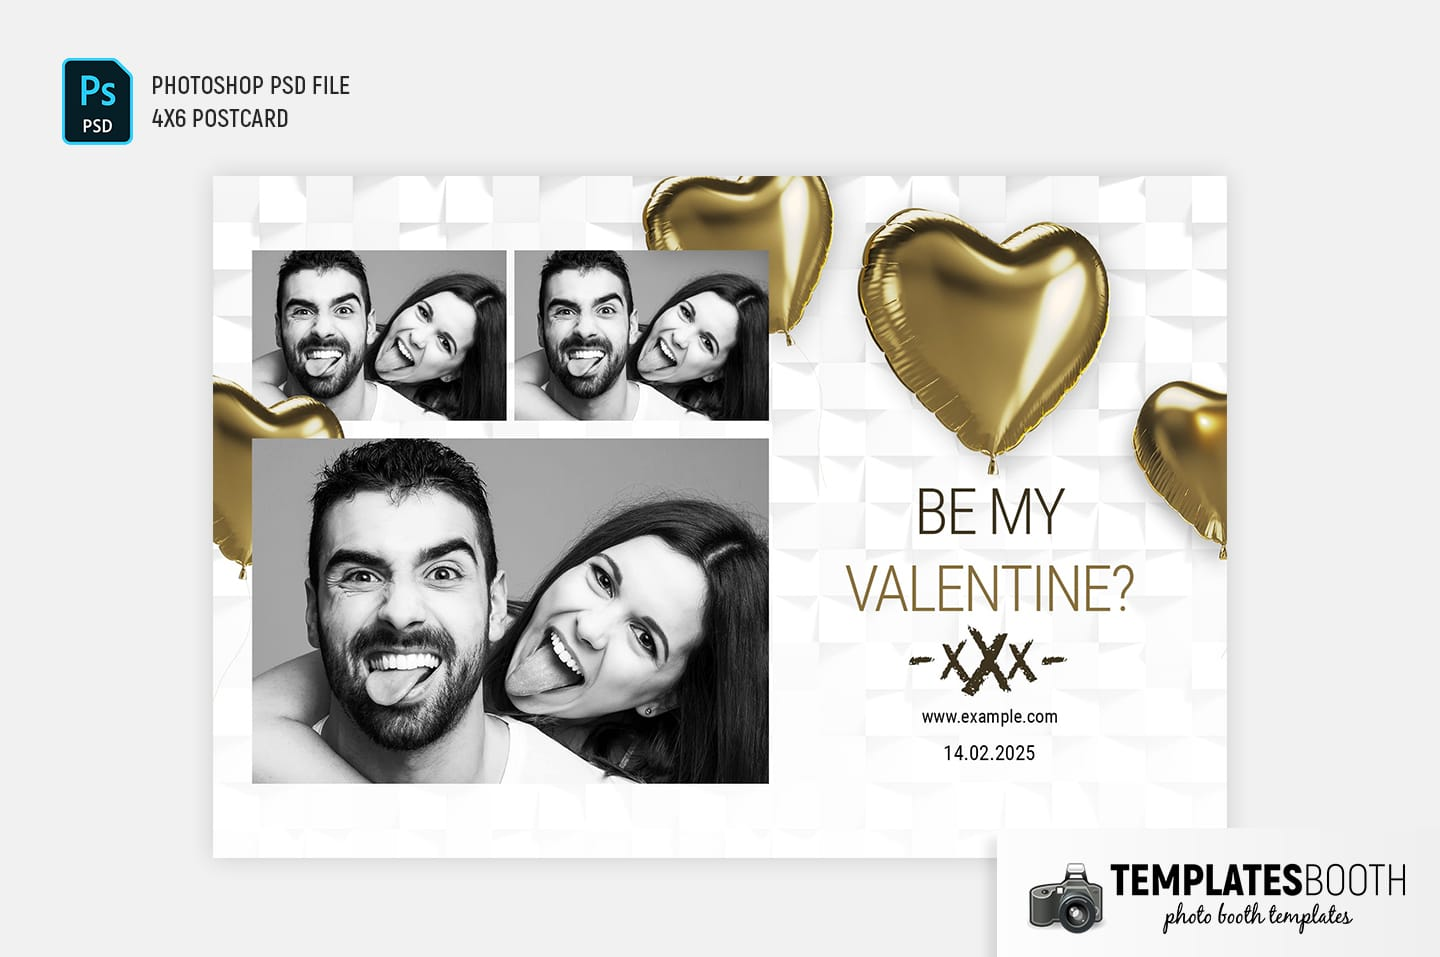 Be My Valentine Photo Booth Template (4x6 landscape)